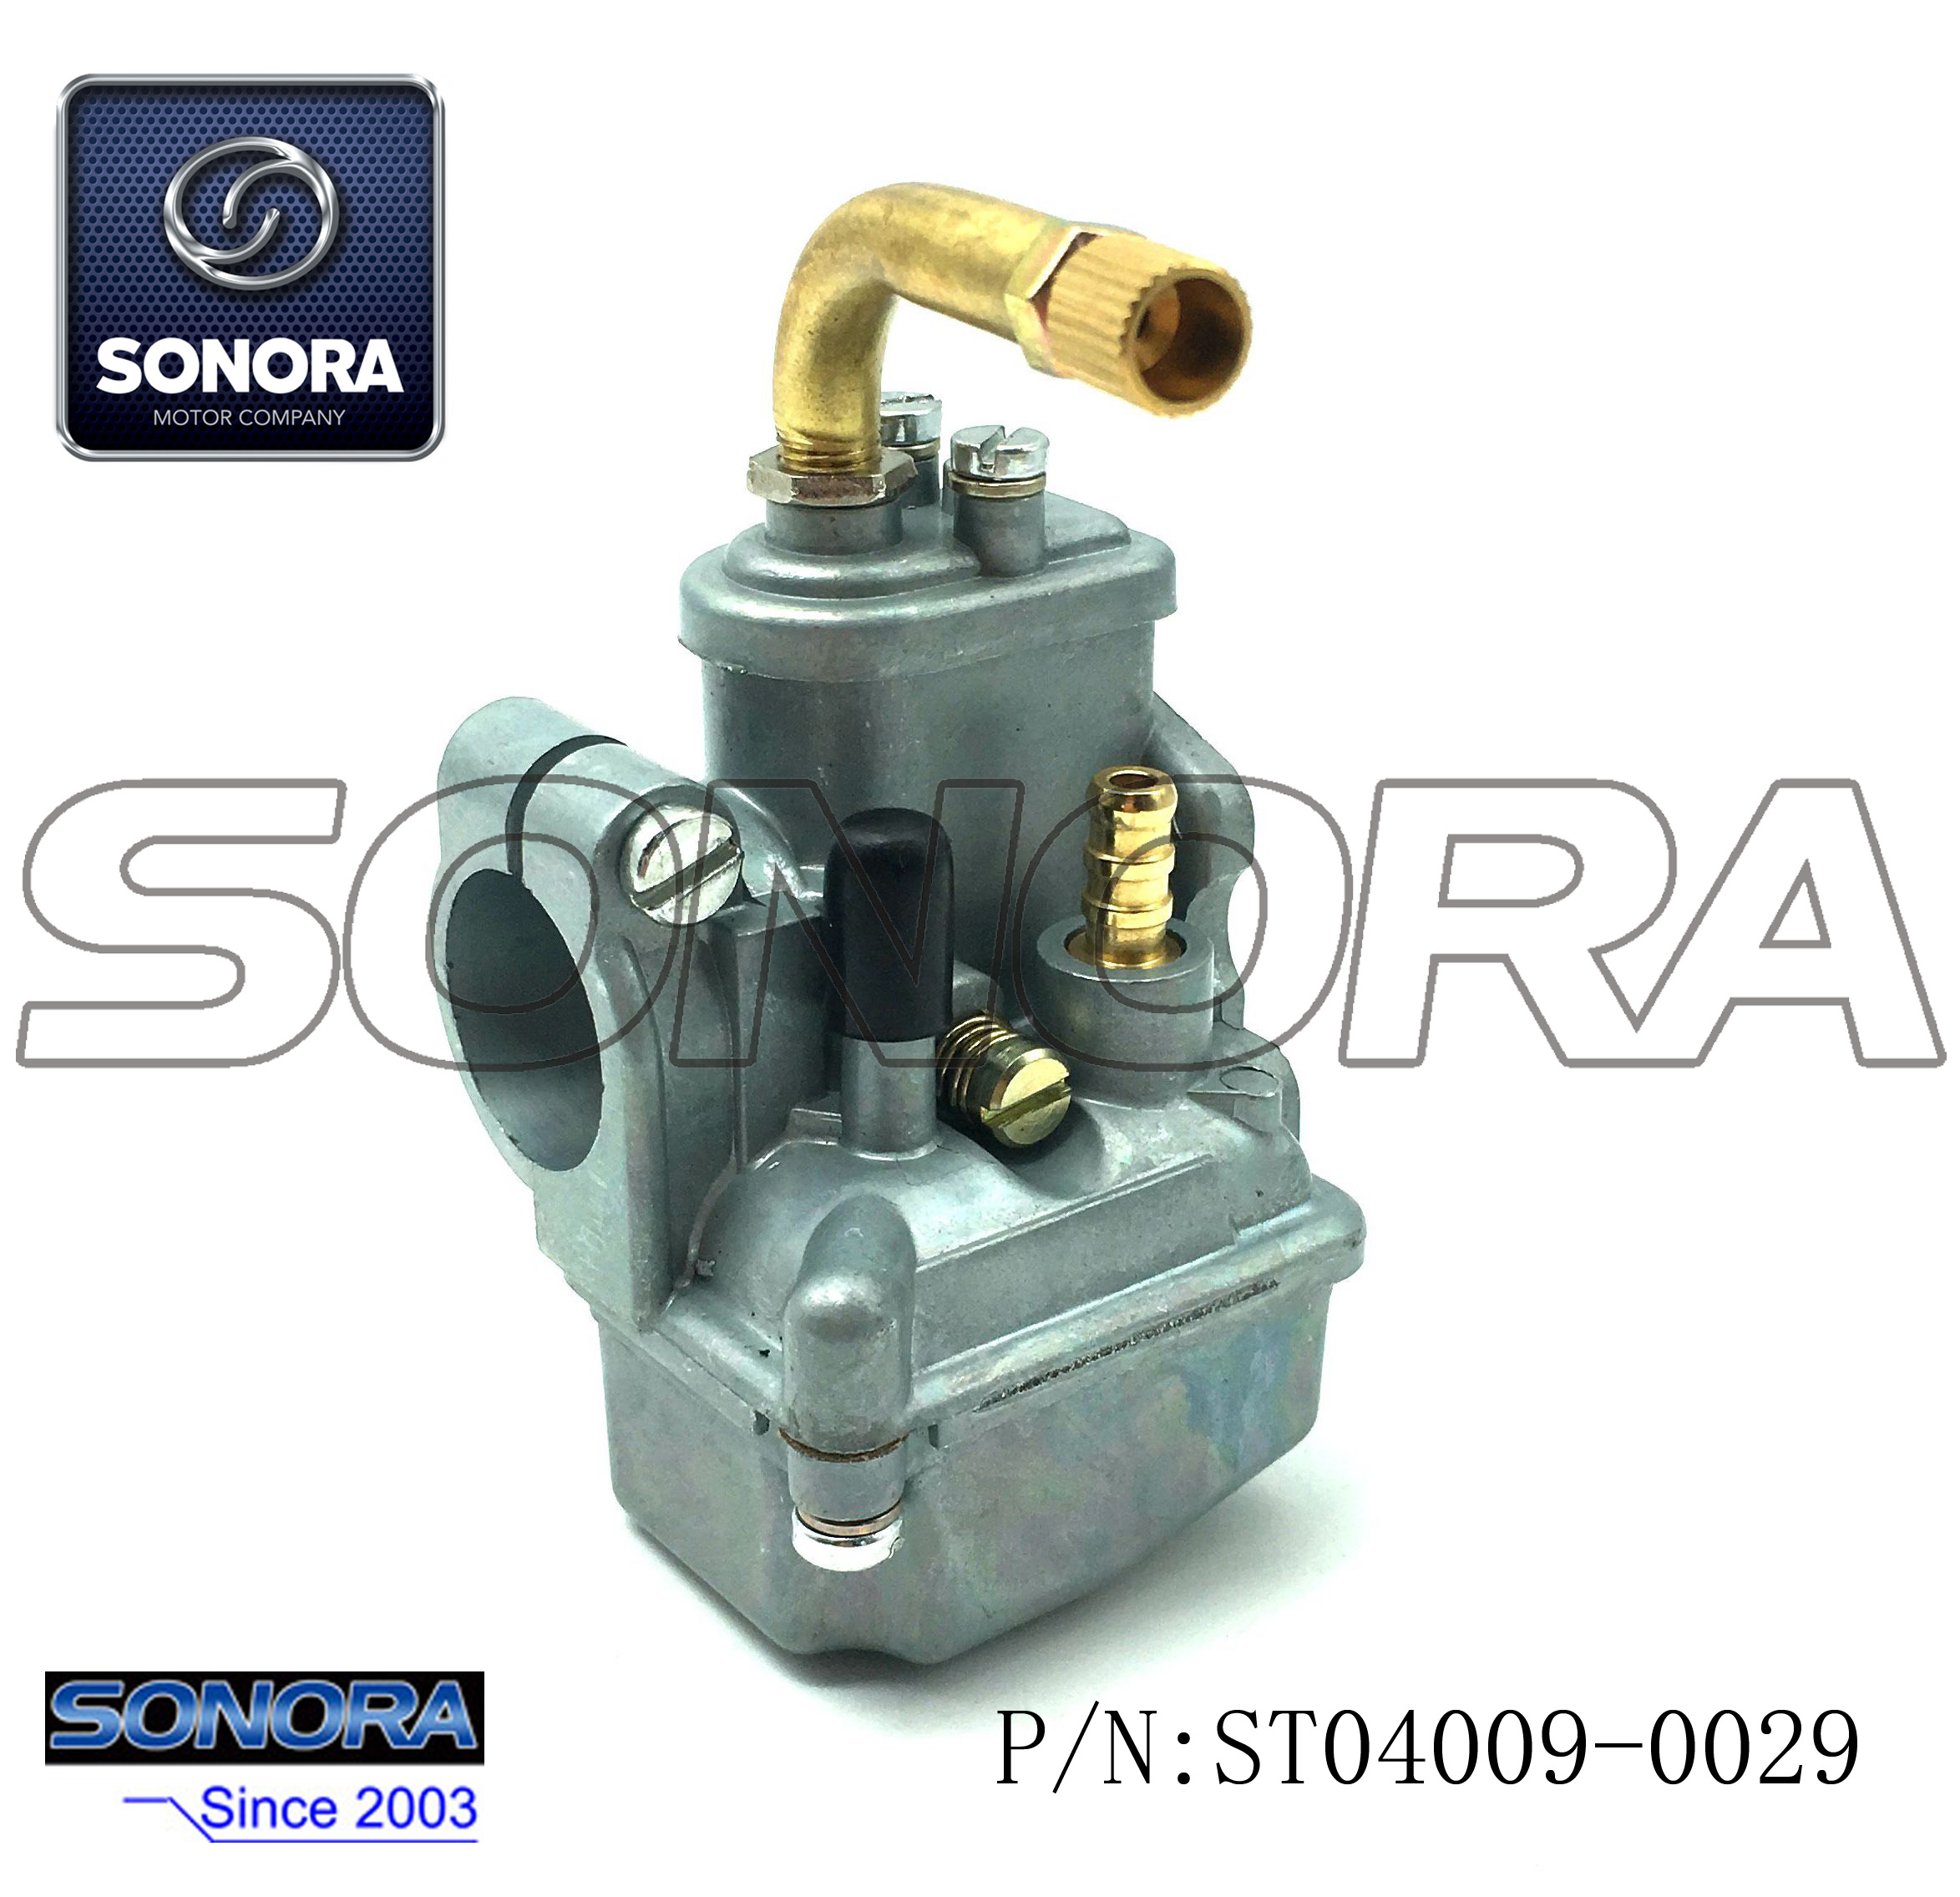 ST04009-0029 BING 85 SACHS MOPED HERCULES NO7 10MM Carburetor